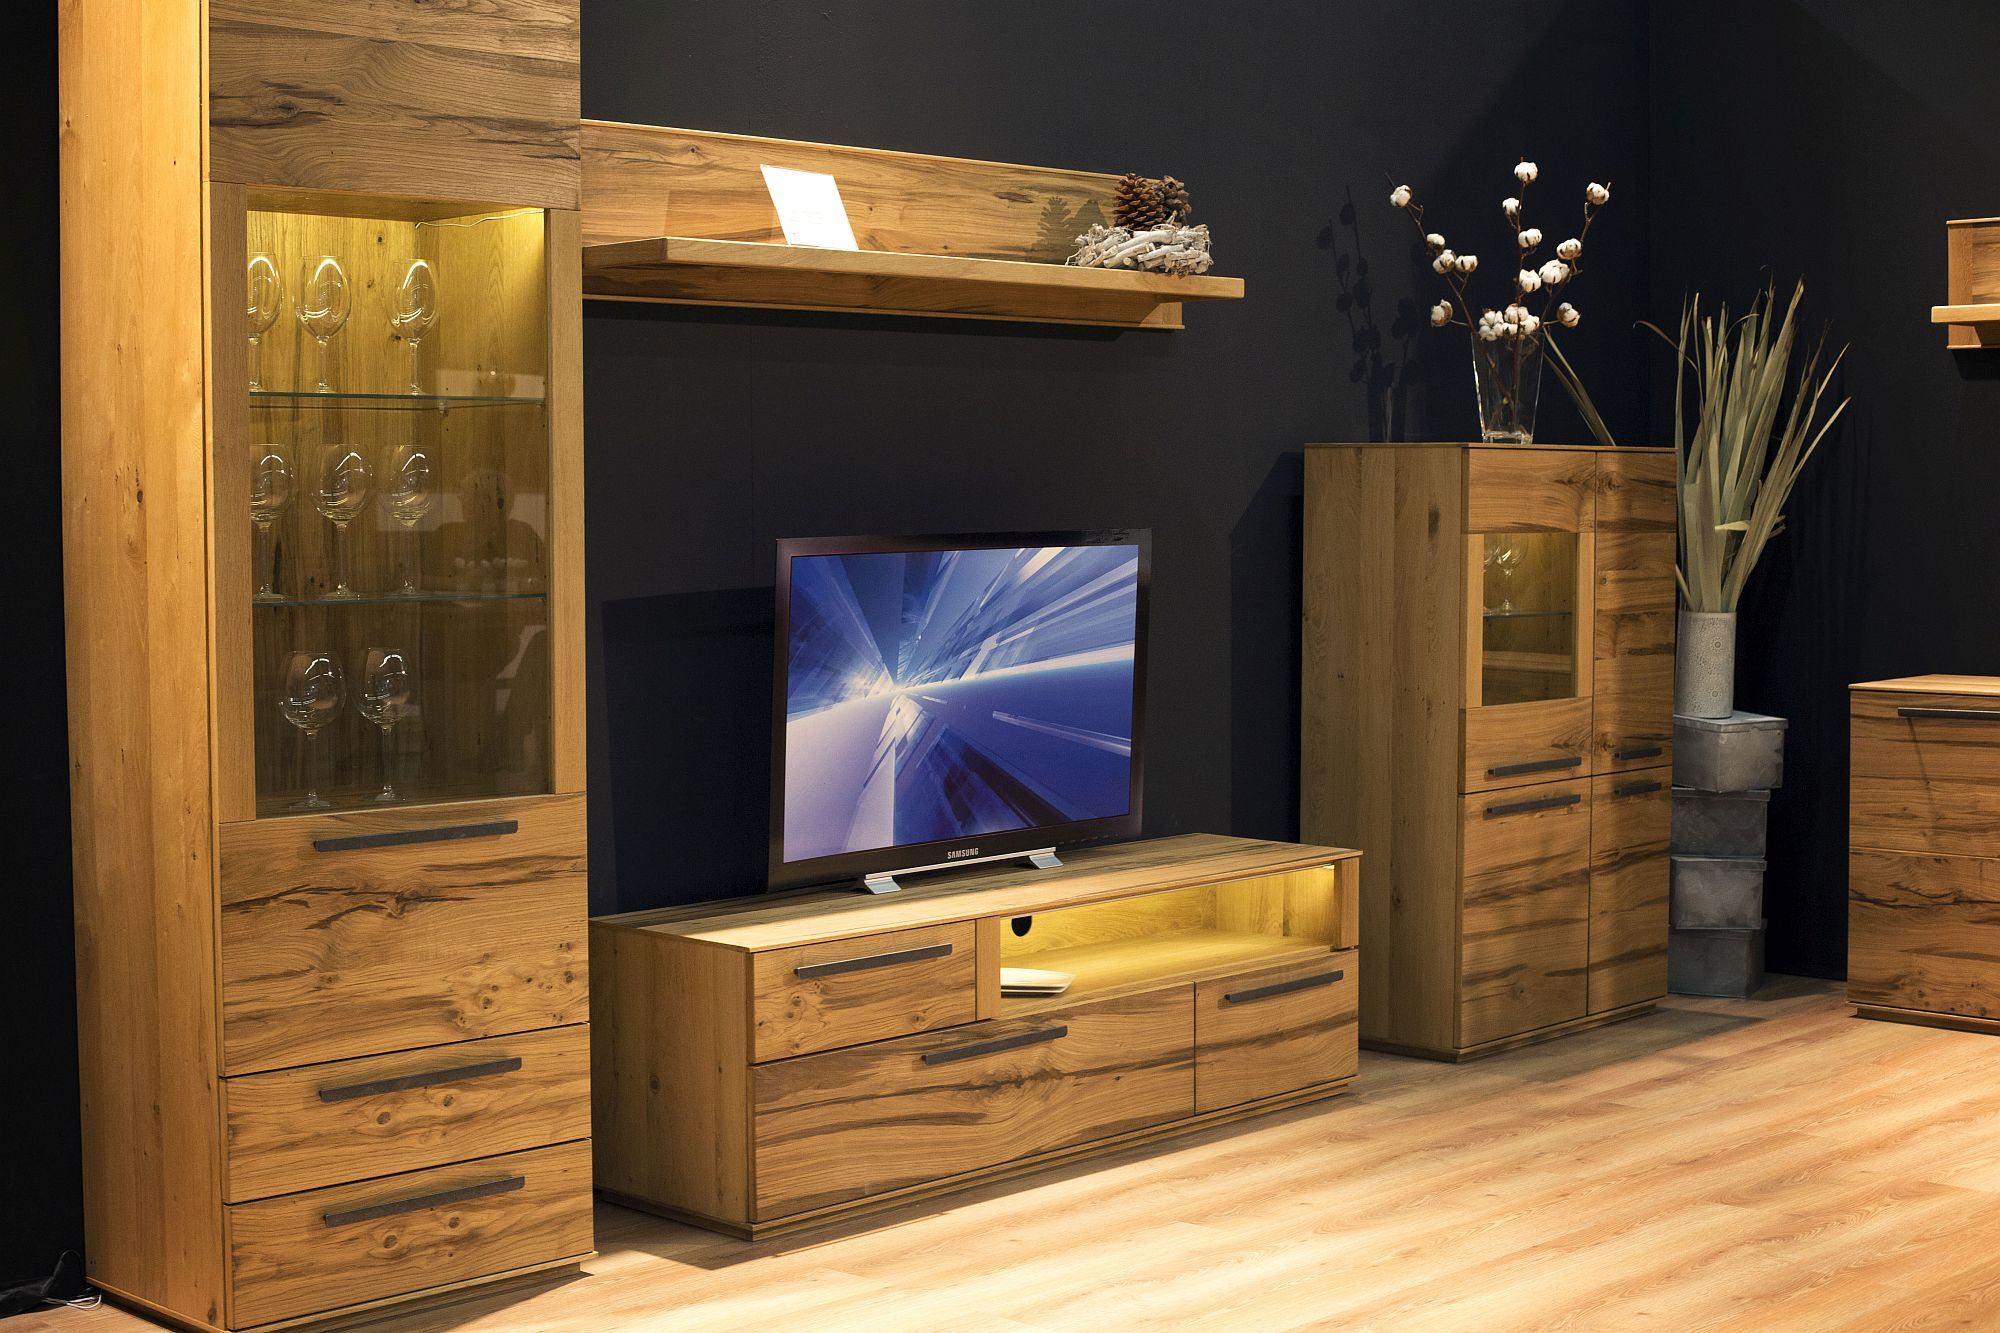 Move away from glossy finishes to embrace the warmth of wood